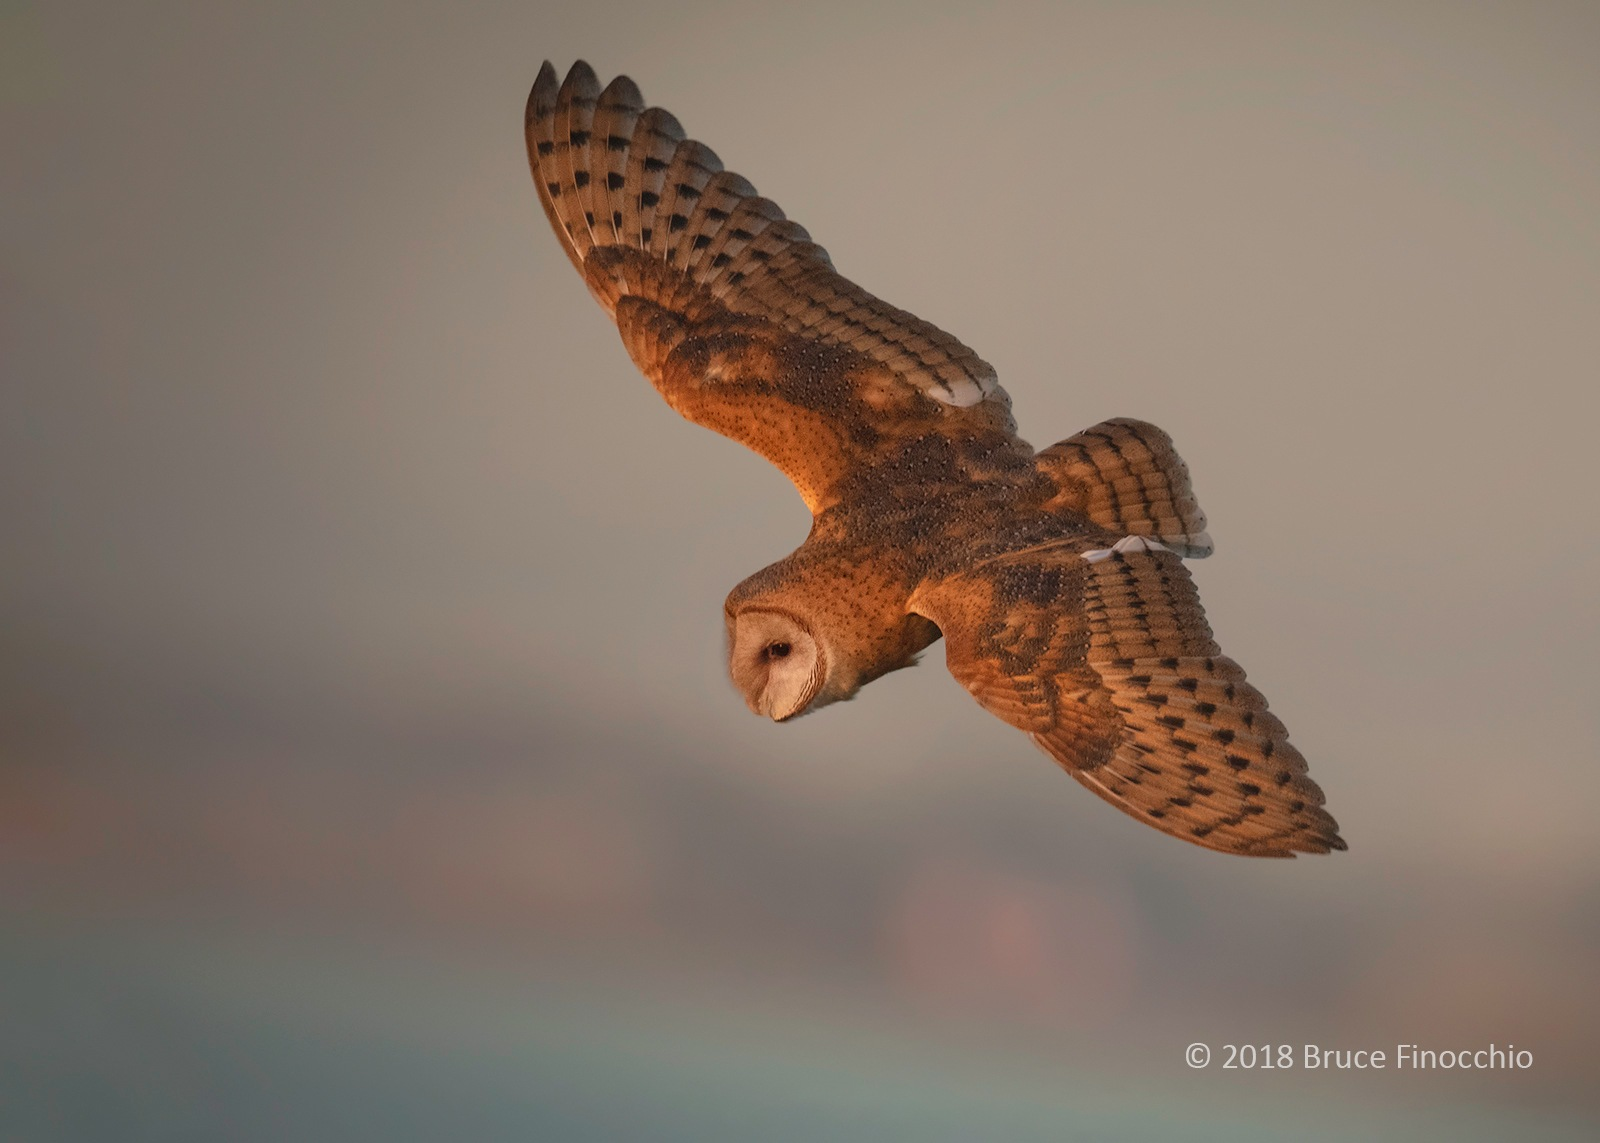 A Flying Barn Owl In The Early Light Of Sunrise